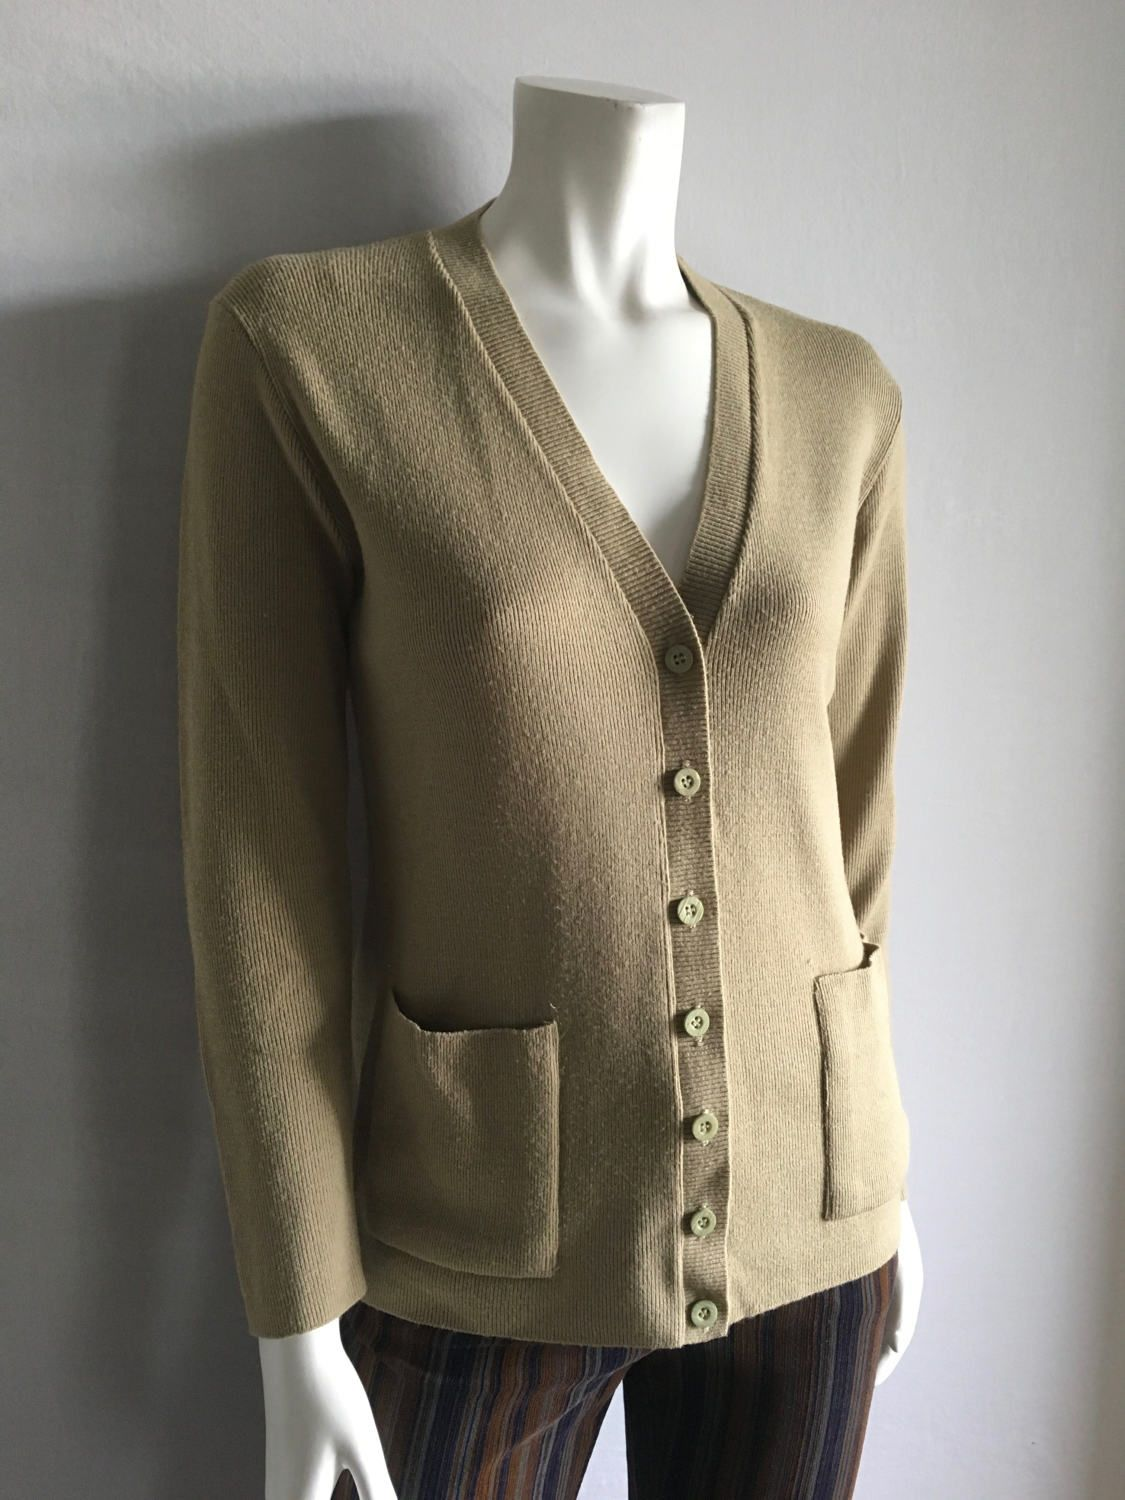 Vintage Women's 80's Tan Cardigan Sweater, Long Sleeve by Rosanna ...